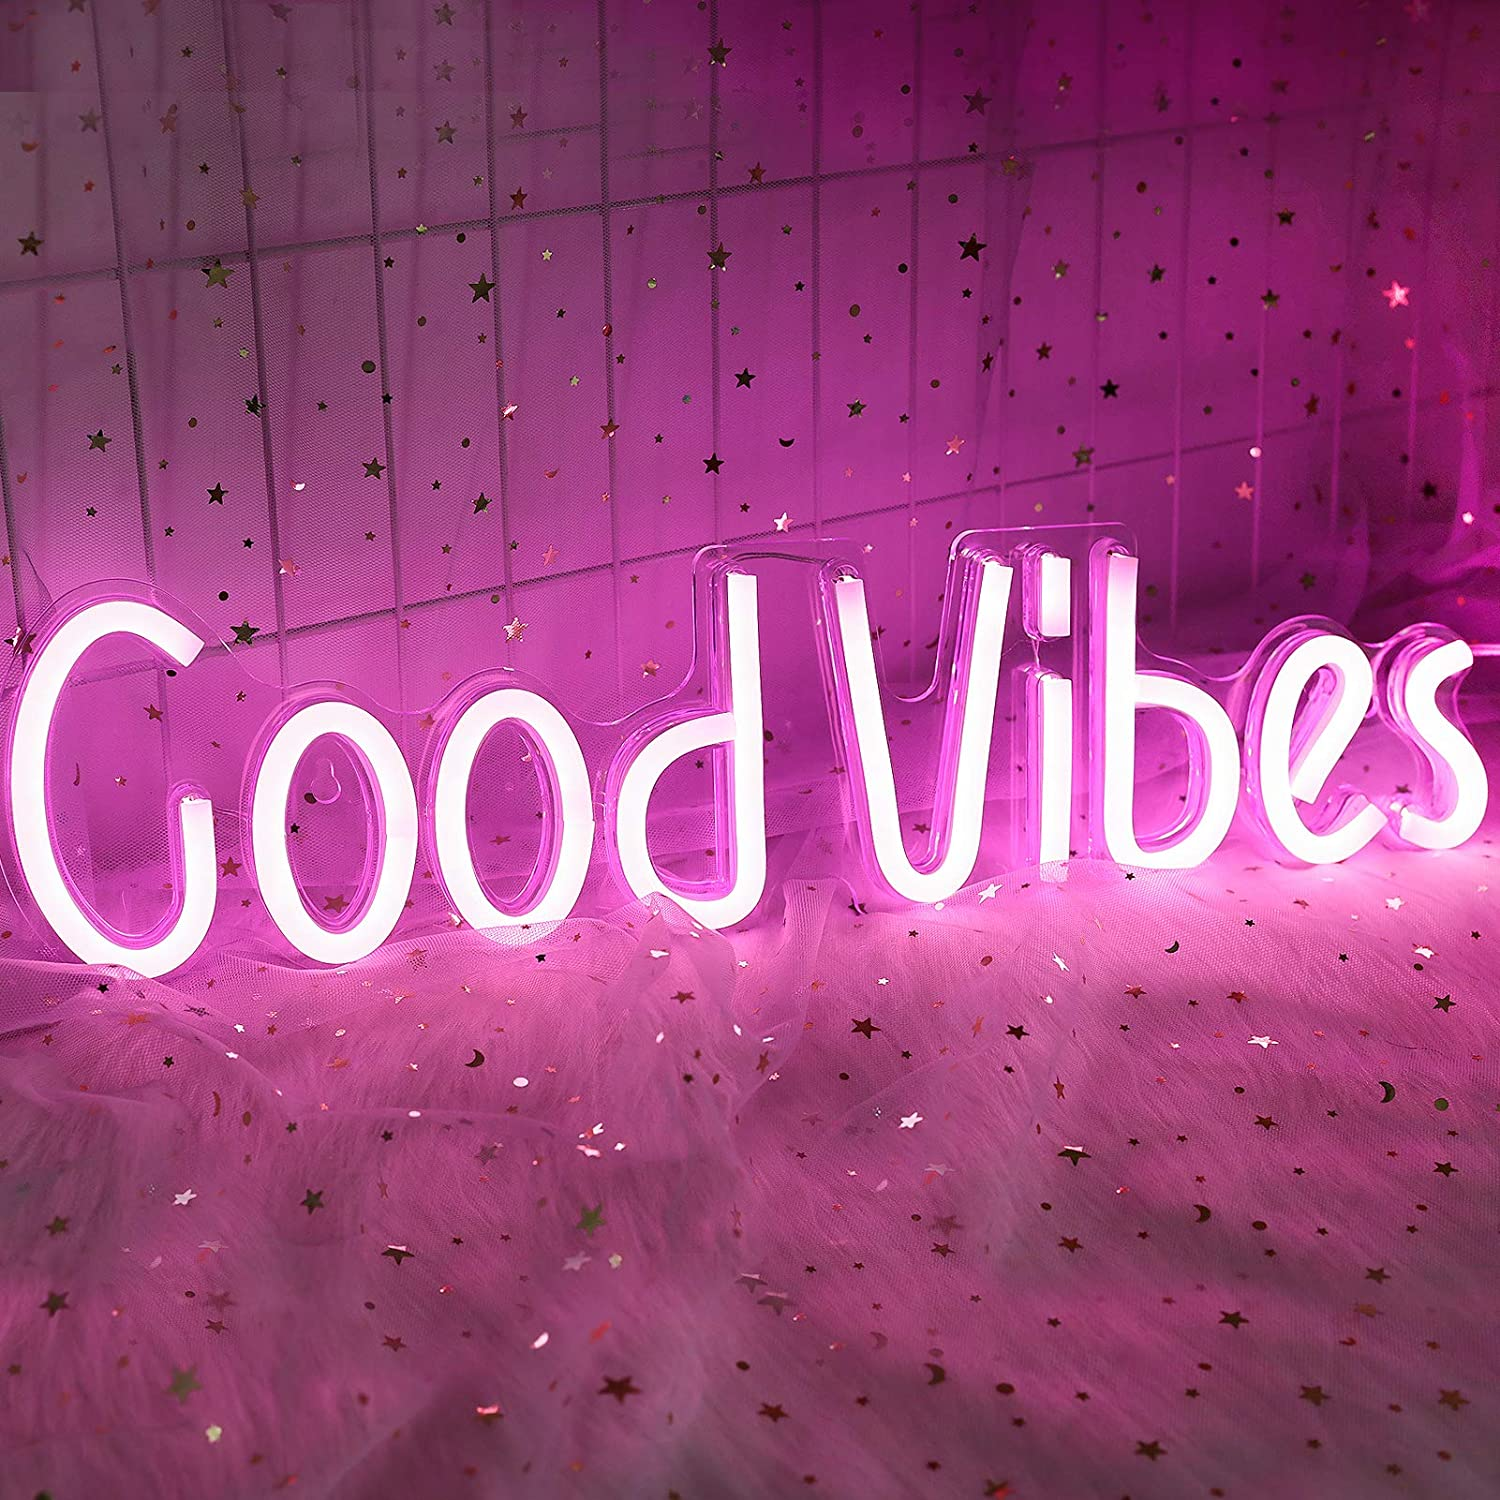 ifreelife Good Vibes Neon Signs(19.5''×5'') Good Vibes Words Neon Lights Acrylic Board Led Signs Room Decor Light for Bedroom Beer Bar Pub Hotel Party Restaurant Game Room Wall Decoration Pink Light